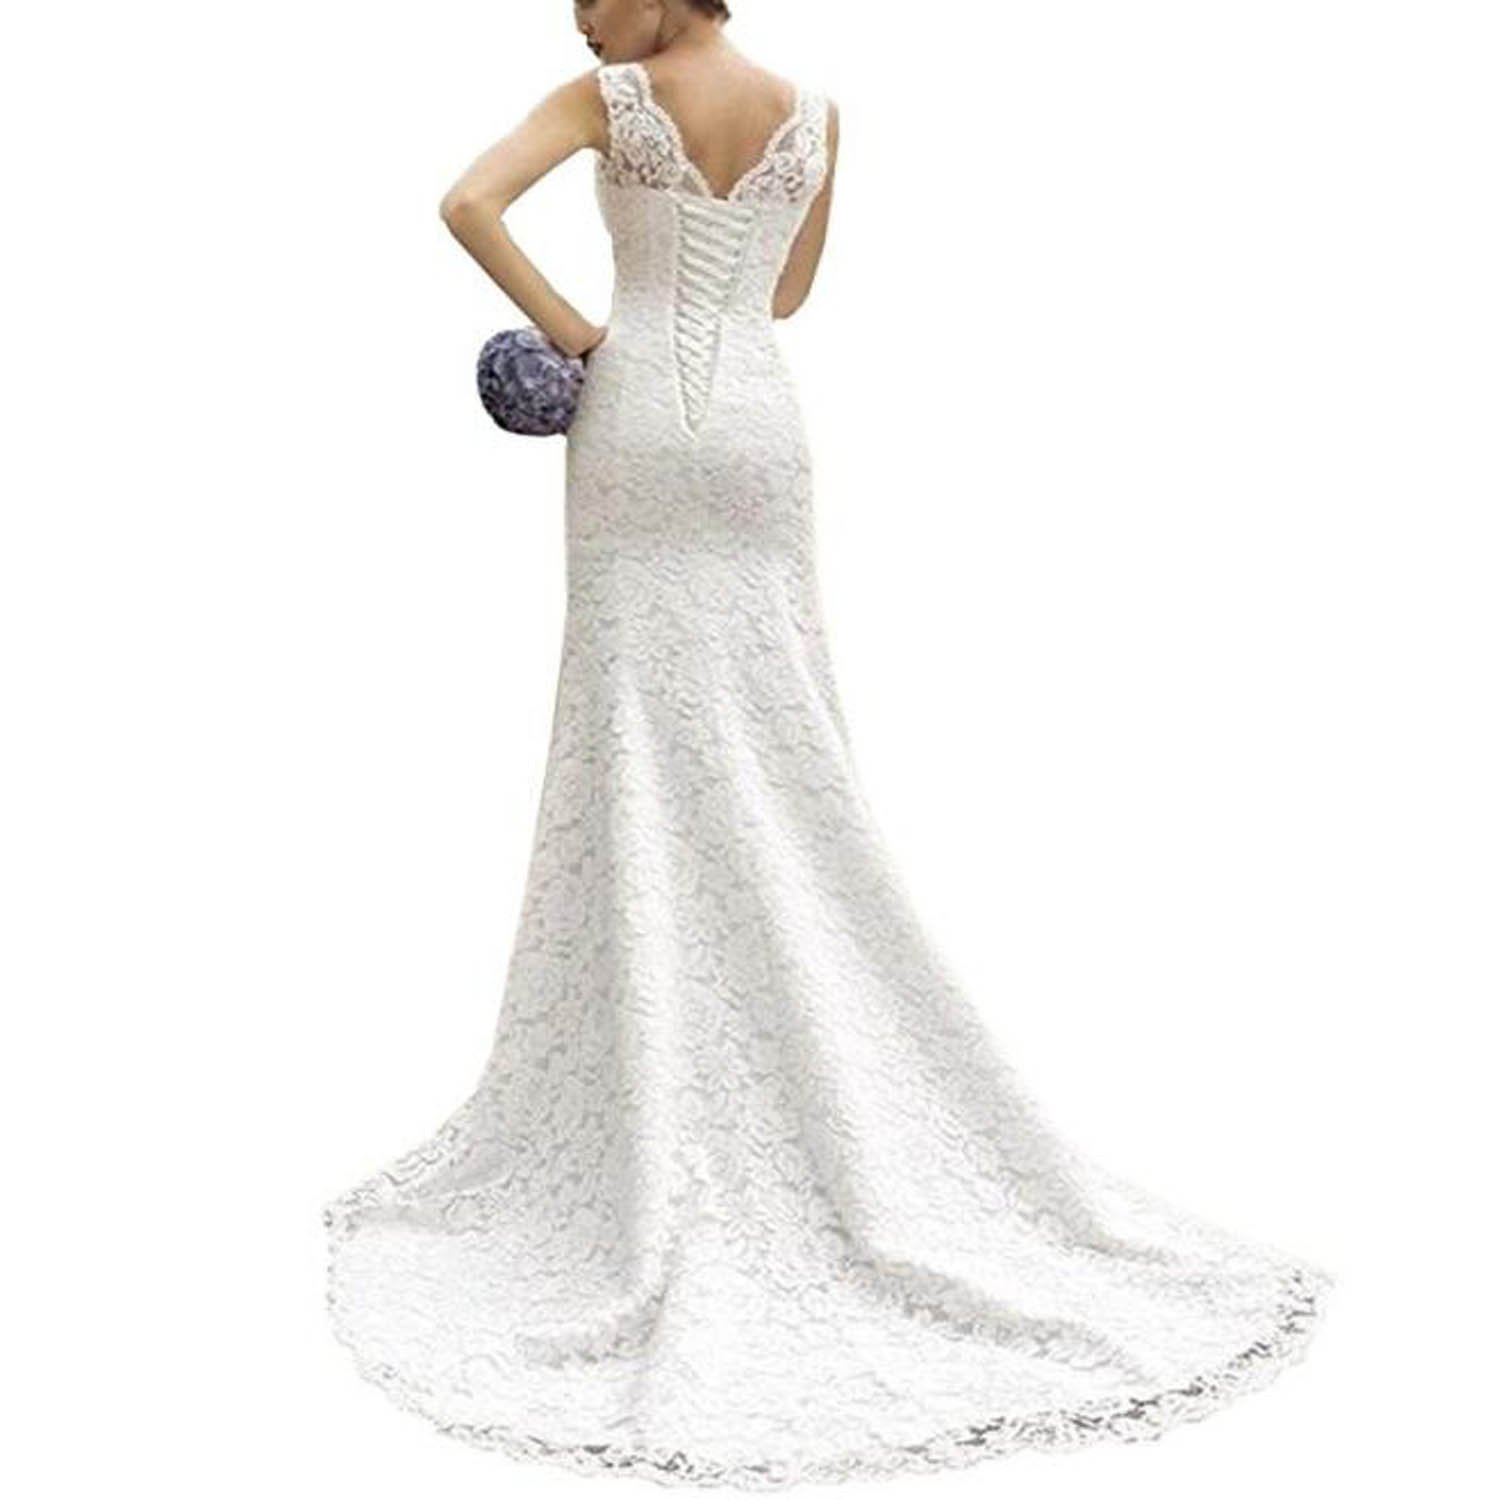 Fair Lady Sweetheart Lace Mermaid Wedding Dresses for Bride 2020 Strapless Full Lace Beach Bridal Gowns